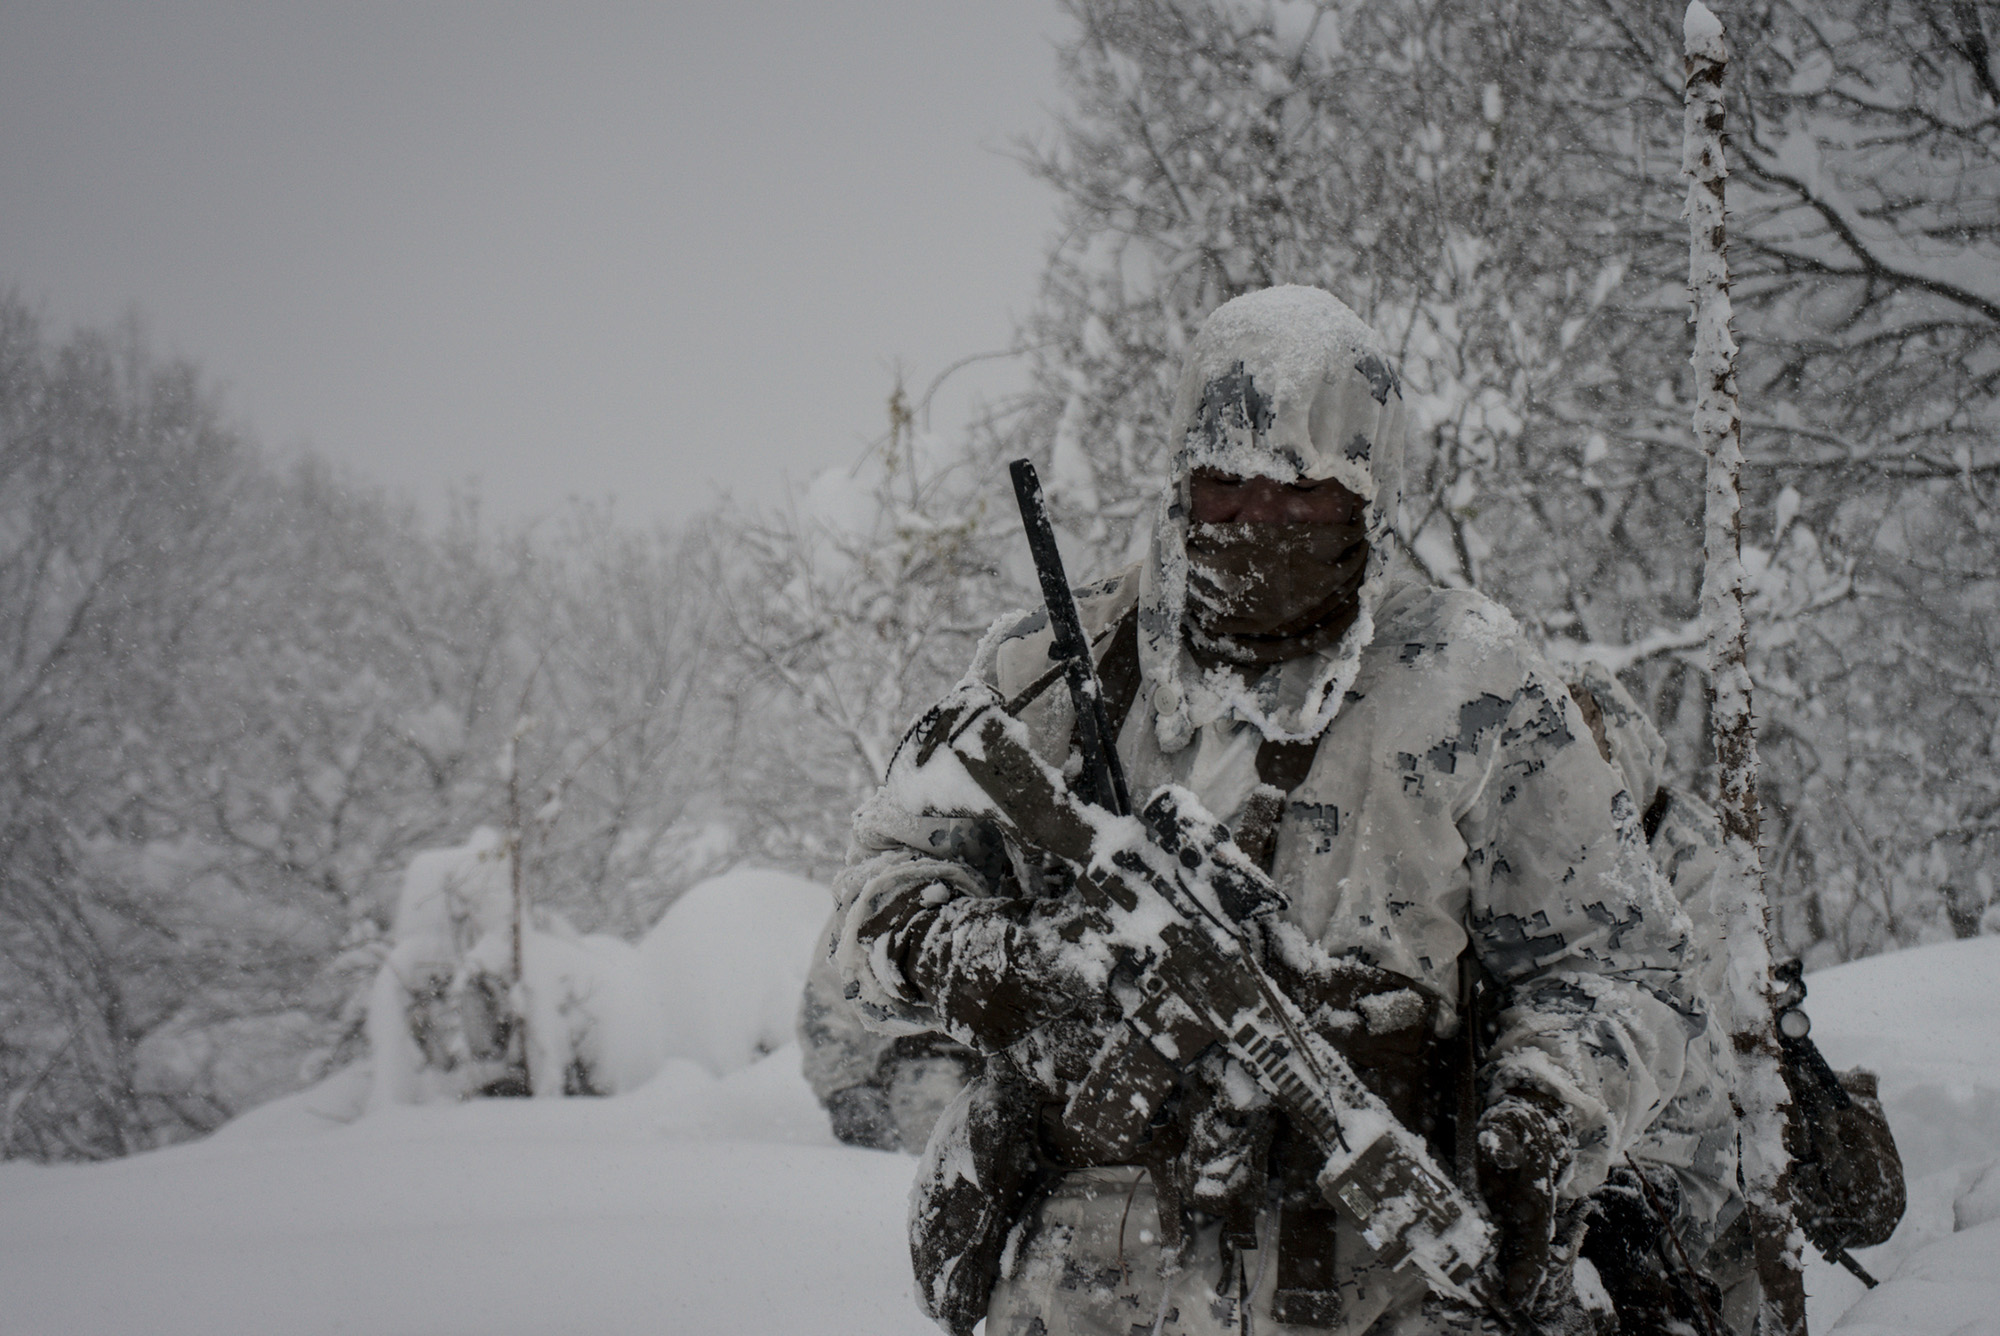 U.S. Marines conduct a combat patrol during exercise Forest Light on mainland Japan, Dec. 16, 2020. (Capt. Nicholas Royer/Marine Corps)